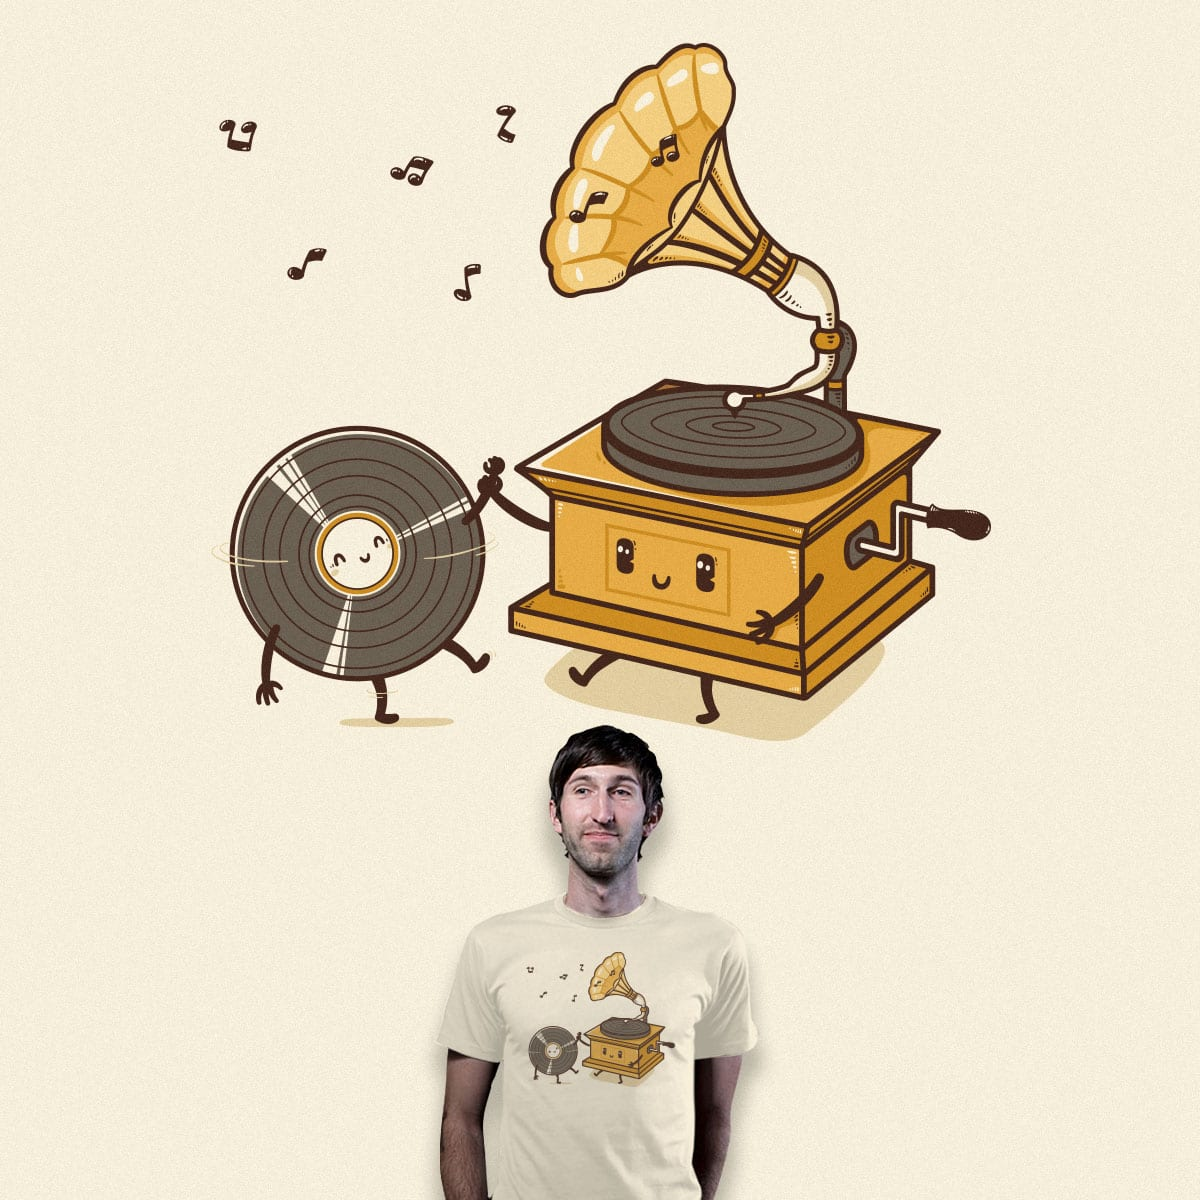 You spin me round and round by Robo Rat and tides on Threadless